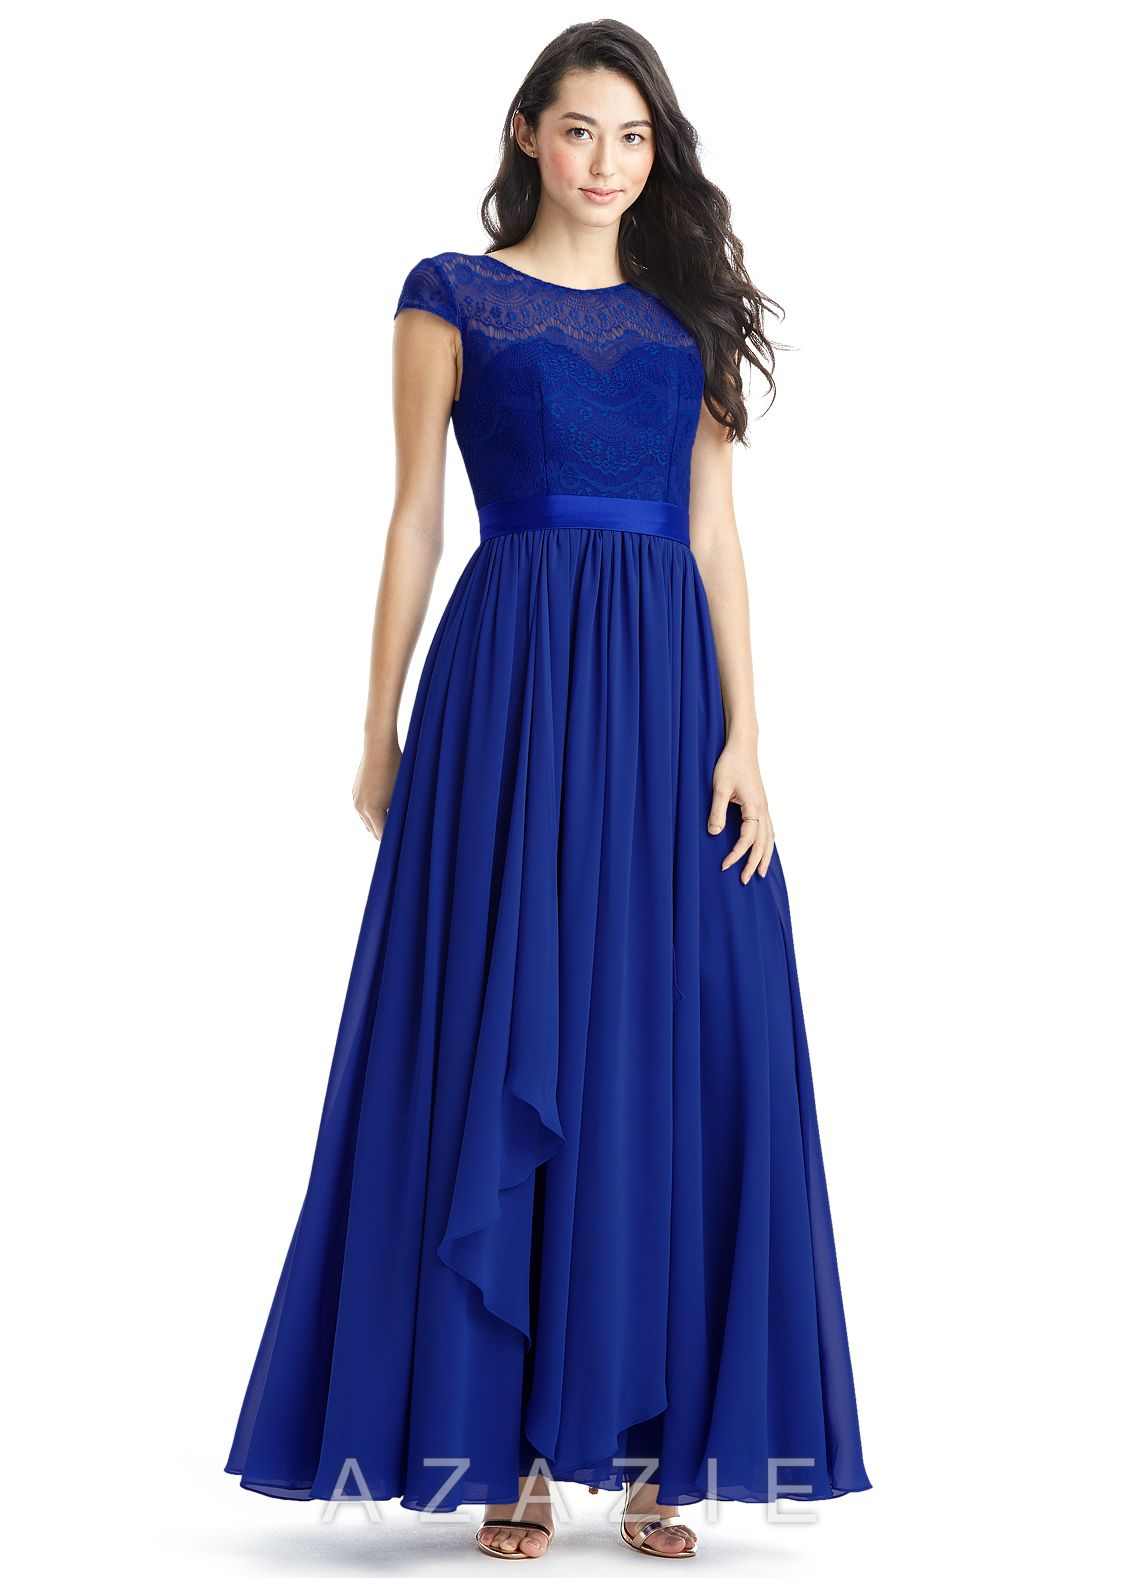 Different color wedding dresses  BEATRICE  Bridesmaid Dress  Bridal parties and Wedding